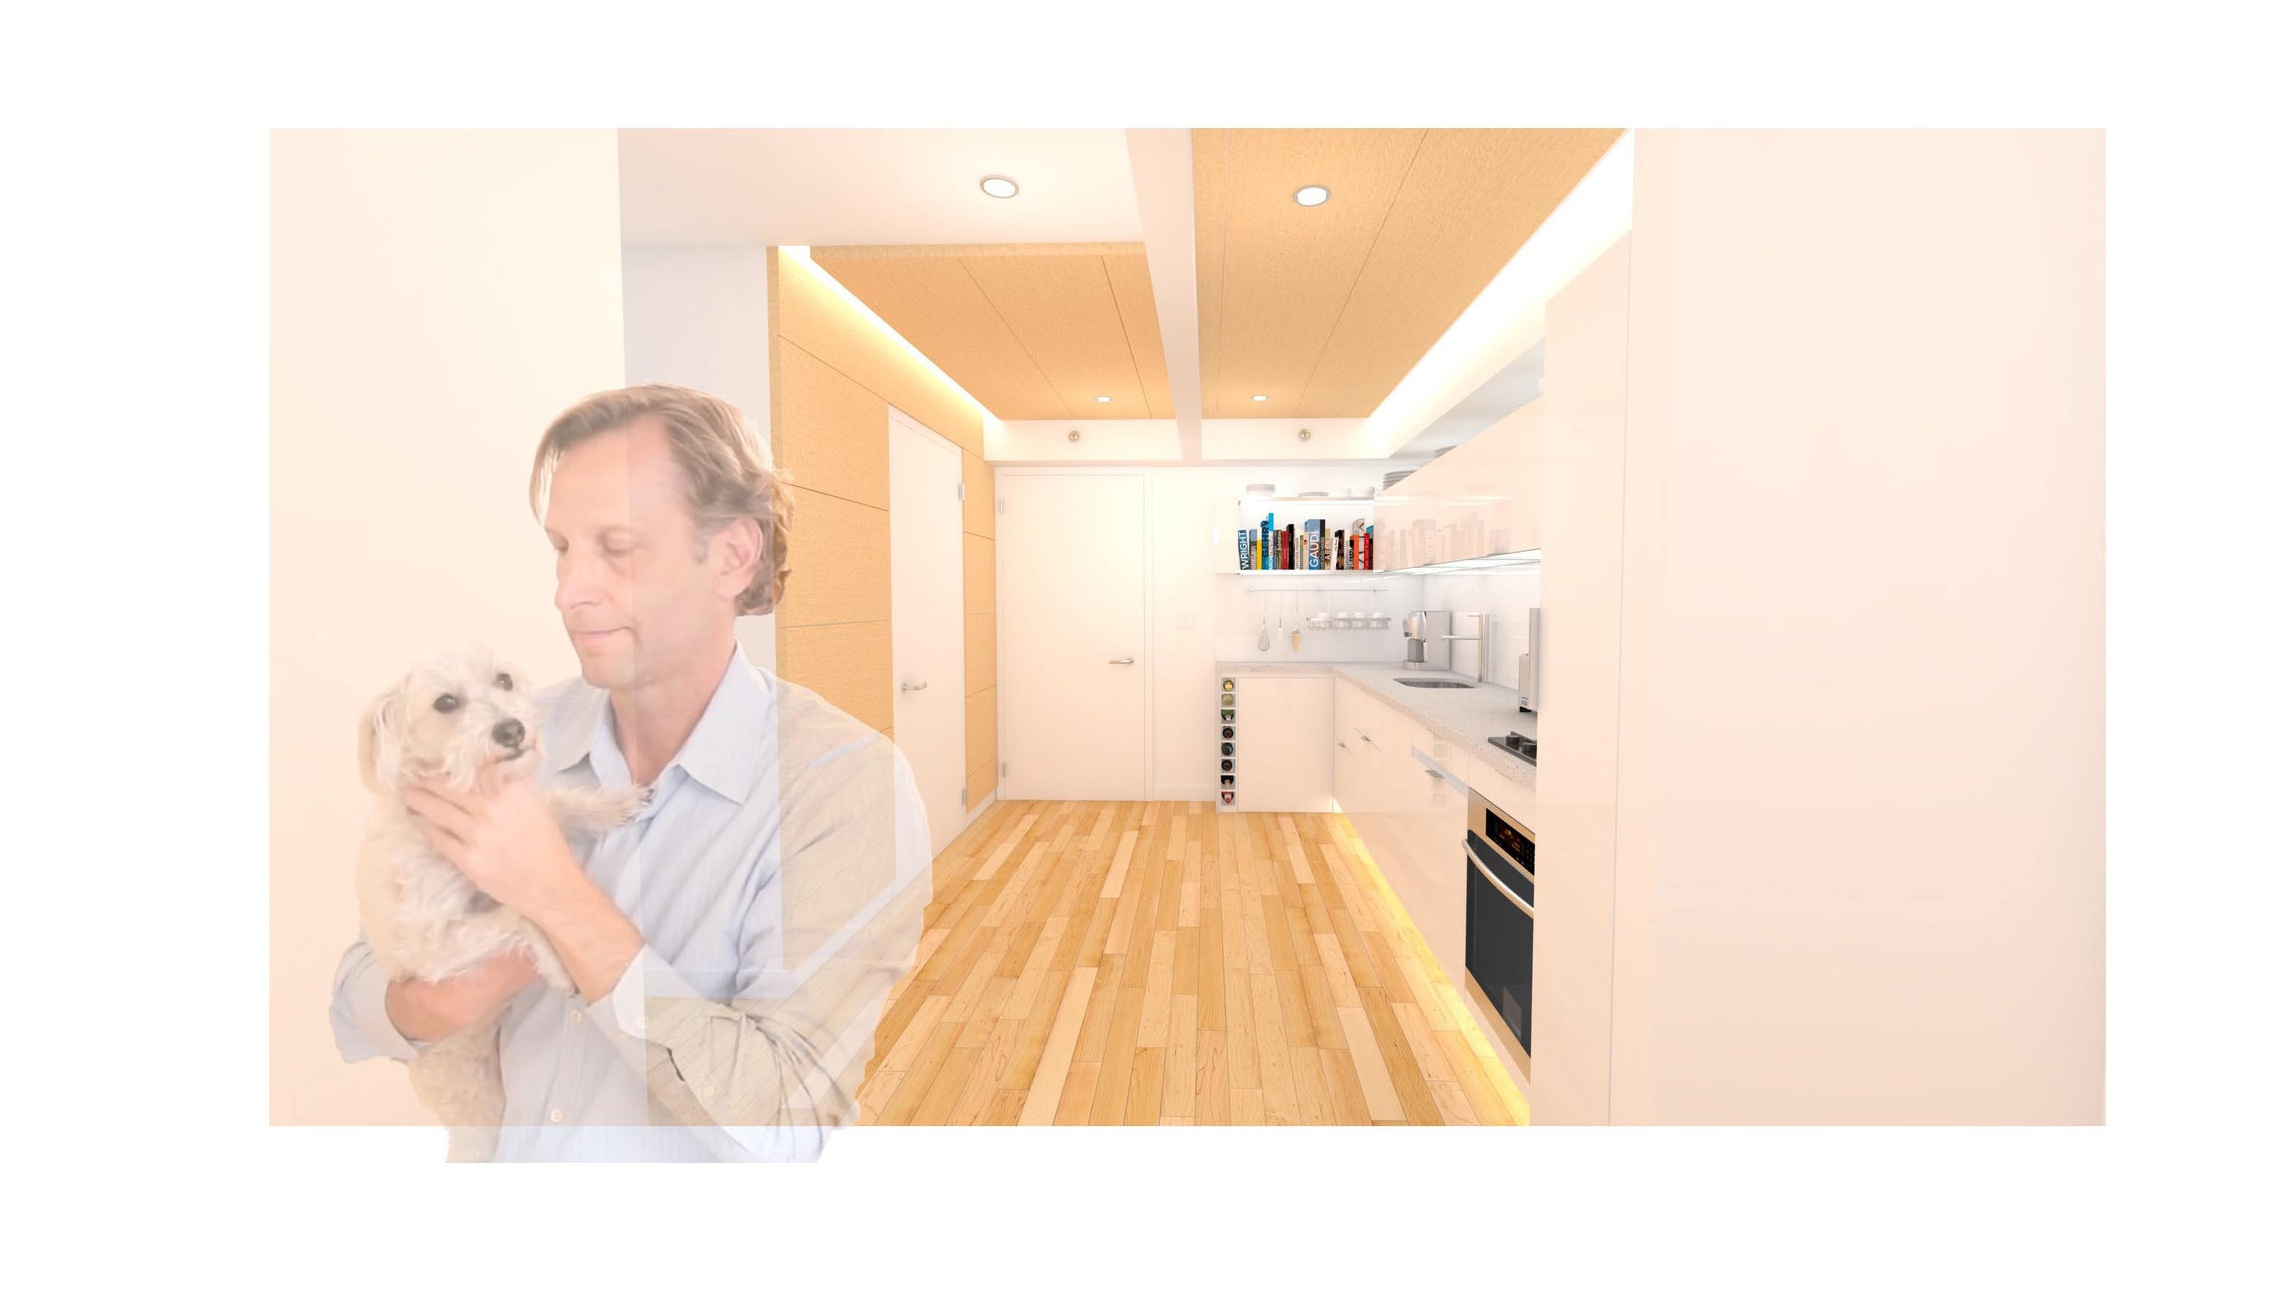 Michael+LaValley+_+Design+Jims+Kitchen+Entry_Page_10.jpg